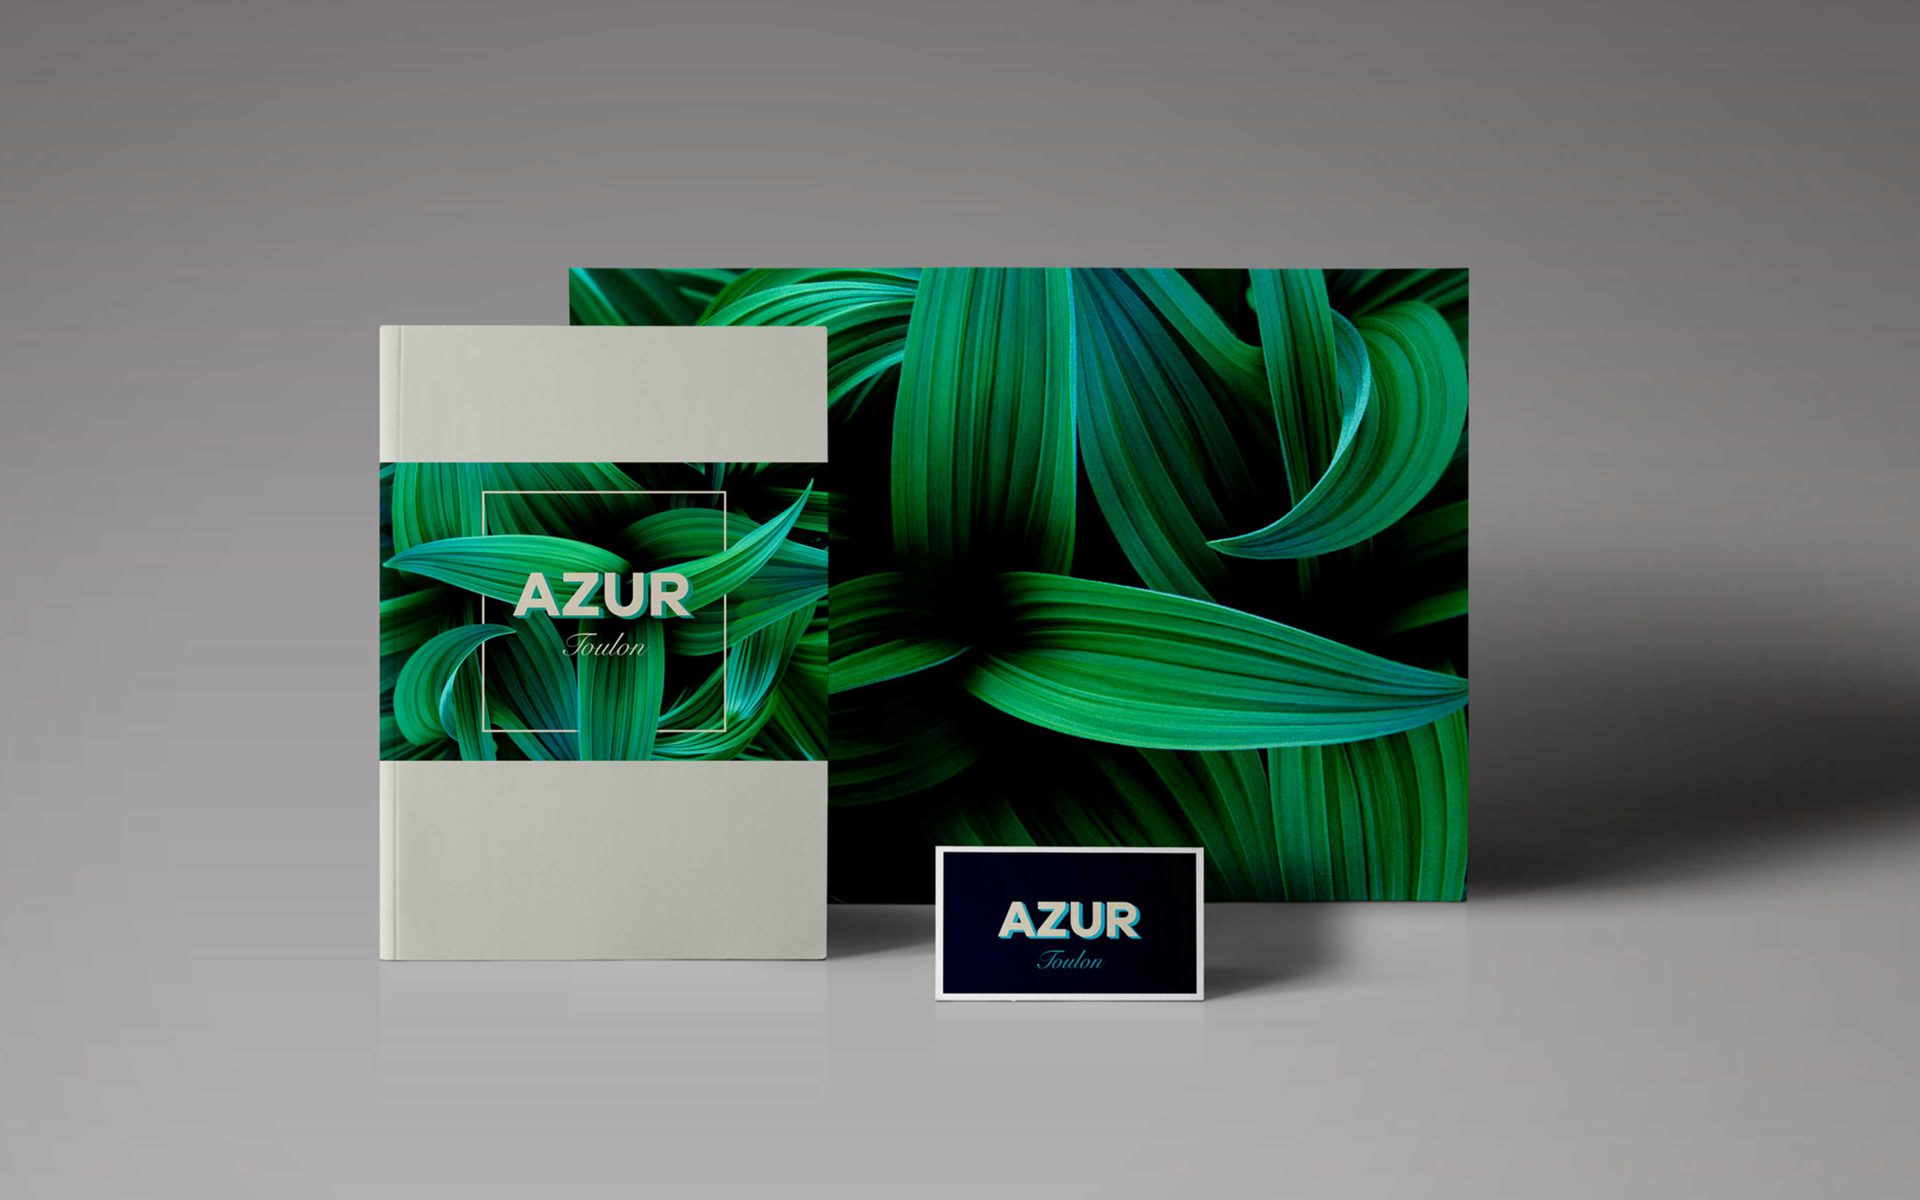 AZUR Toulon property development luxurious green and blue corporate stationery brand logo and creative by DIFFER